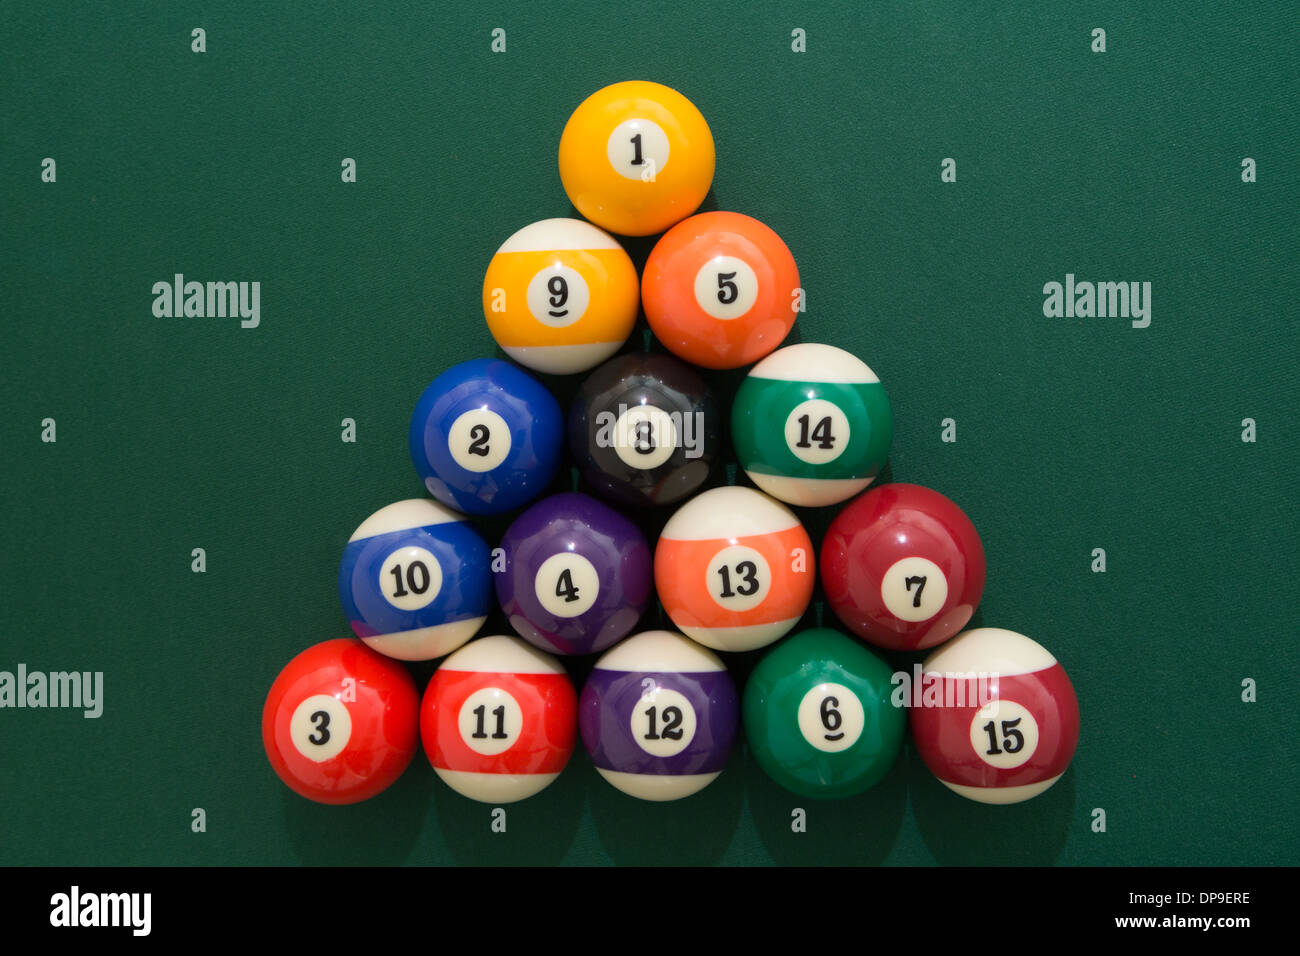 Pool Balls Set Up At The Start Of A Game Stock Photo Alamy - How to set up a pool table